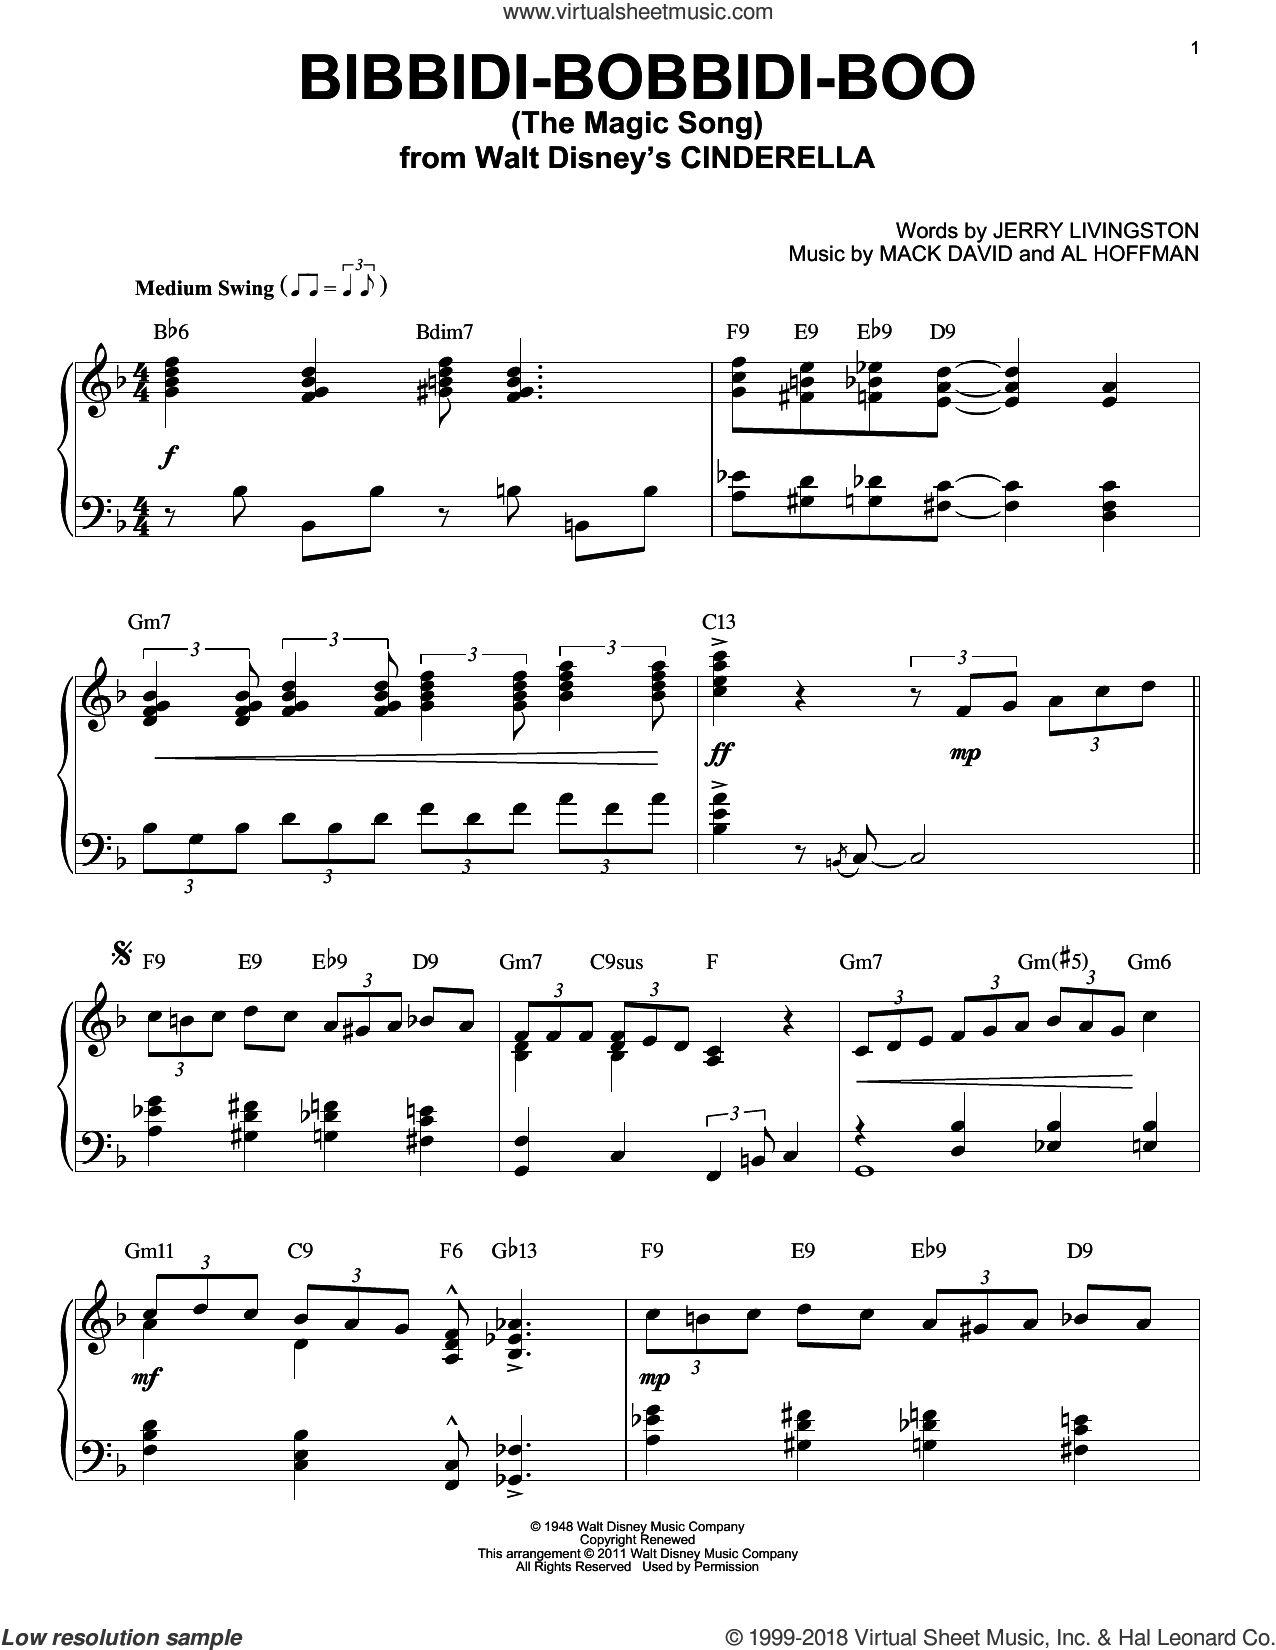 Bibbidi-Bobbidi-Boo (The Magic Song) sheet music for piano solo by Verna Felton, Al Hoffman, Jerry Livingston and Mack David, intermediate skill level